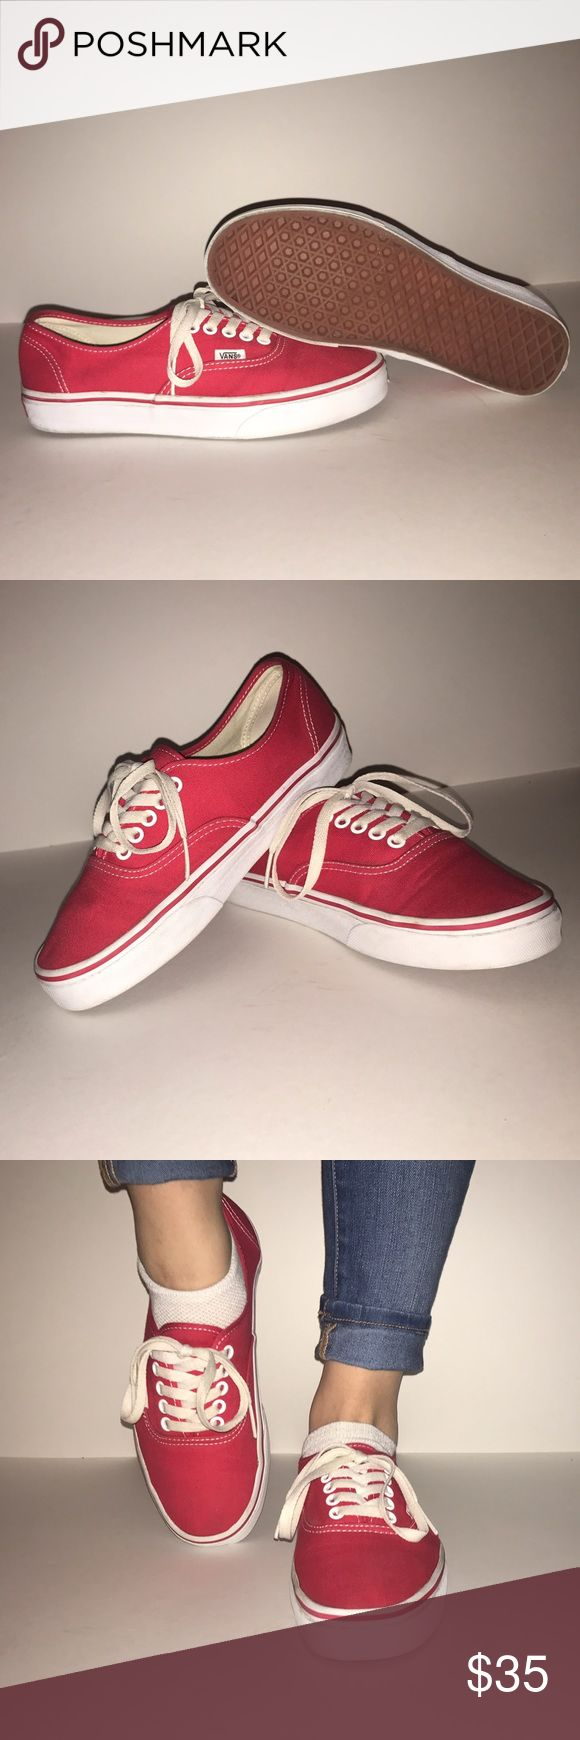 stunning vans red shoes outfit